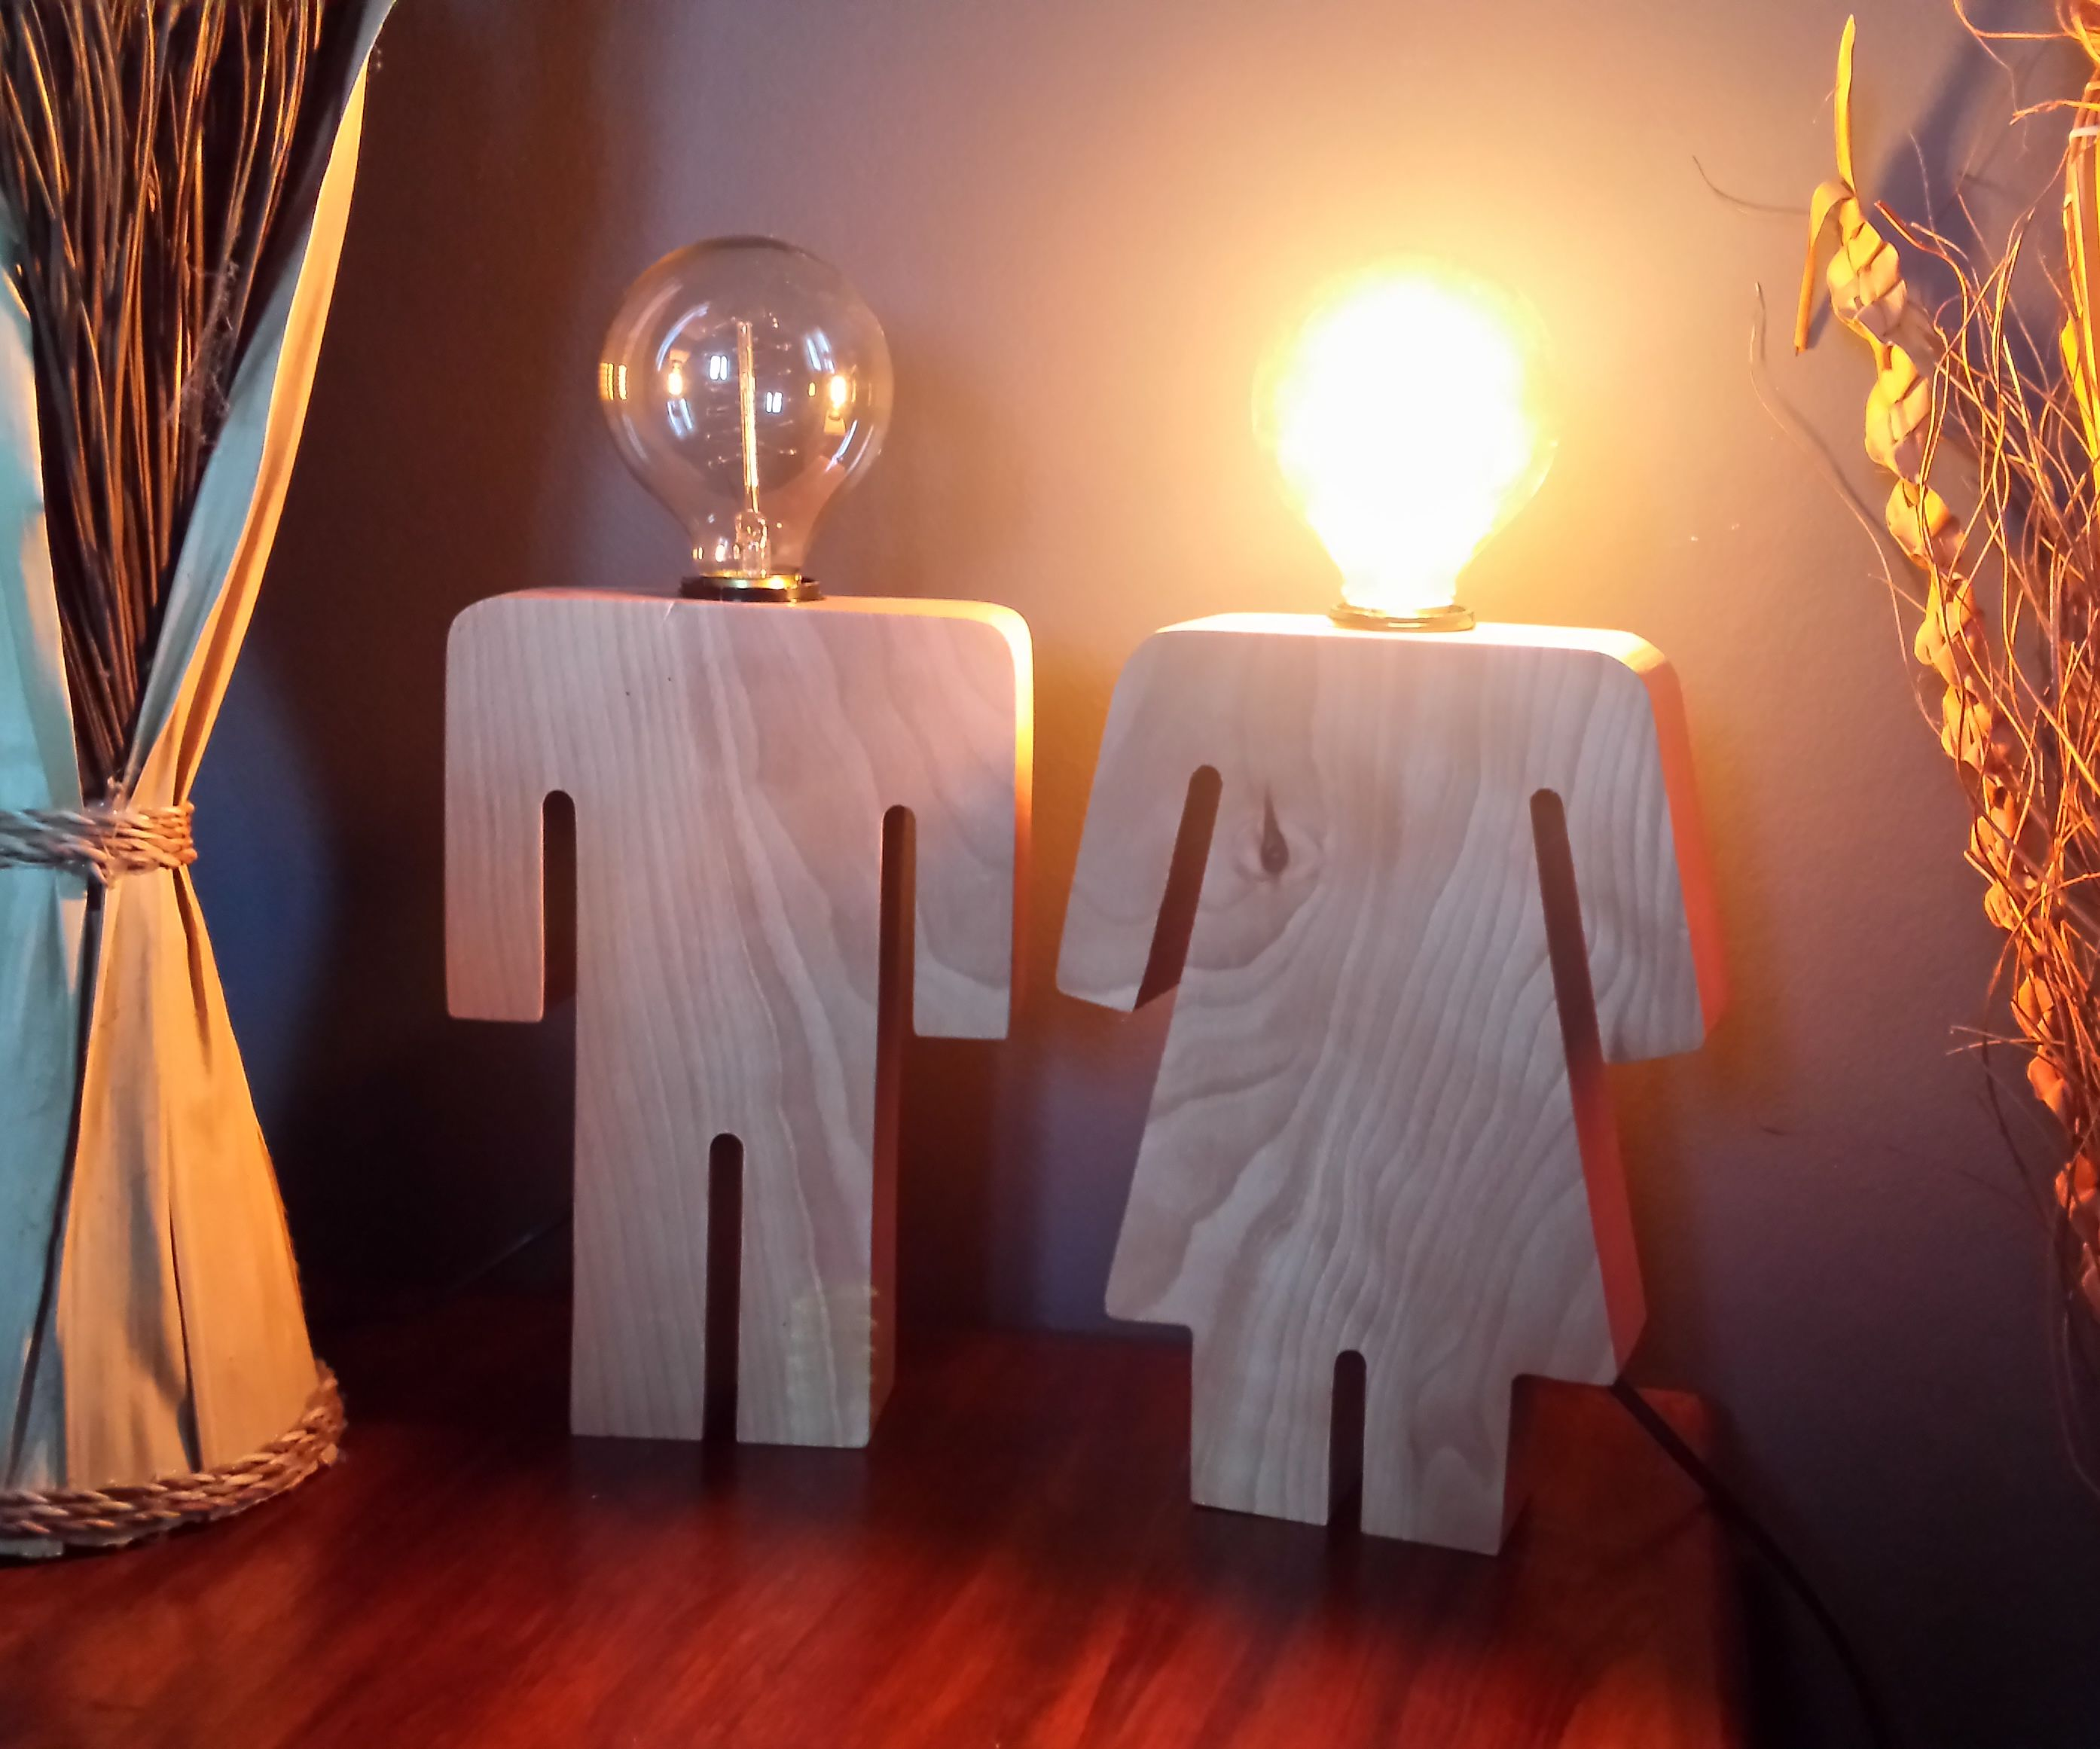 Restroom Sign Inspired Bedside Lamps